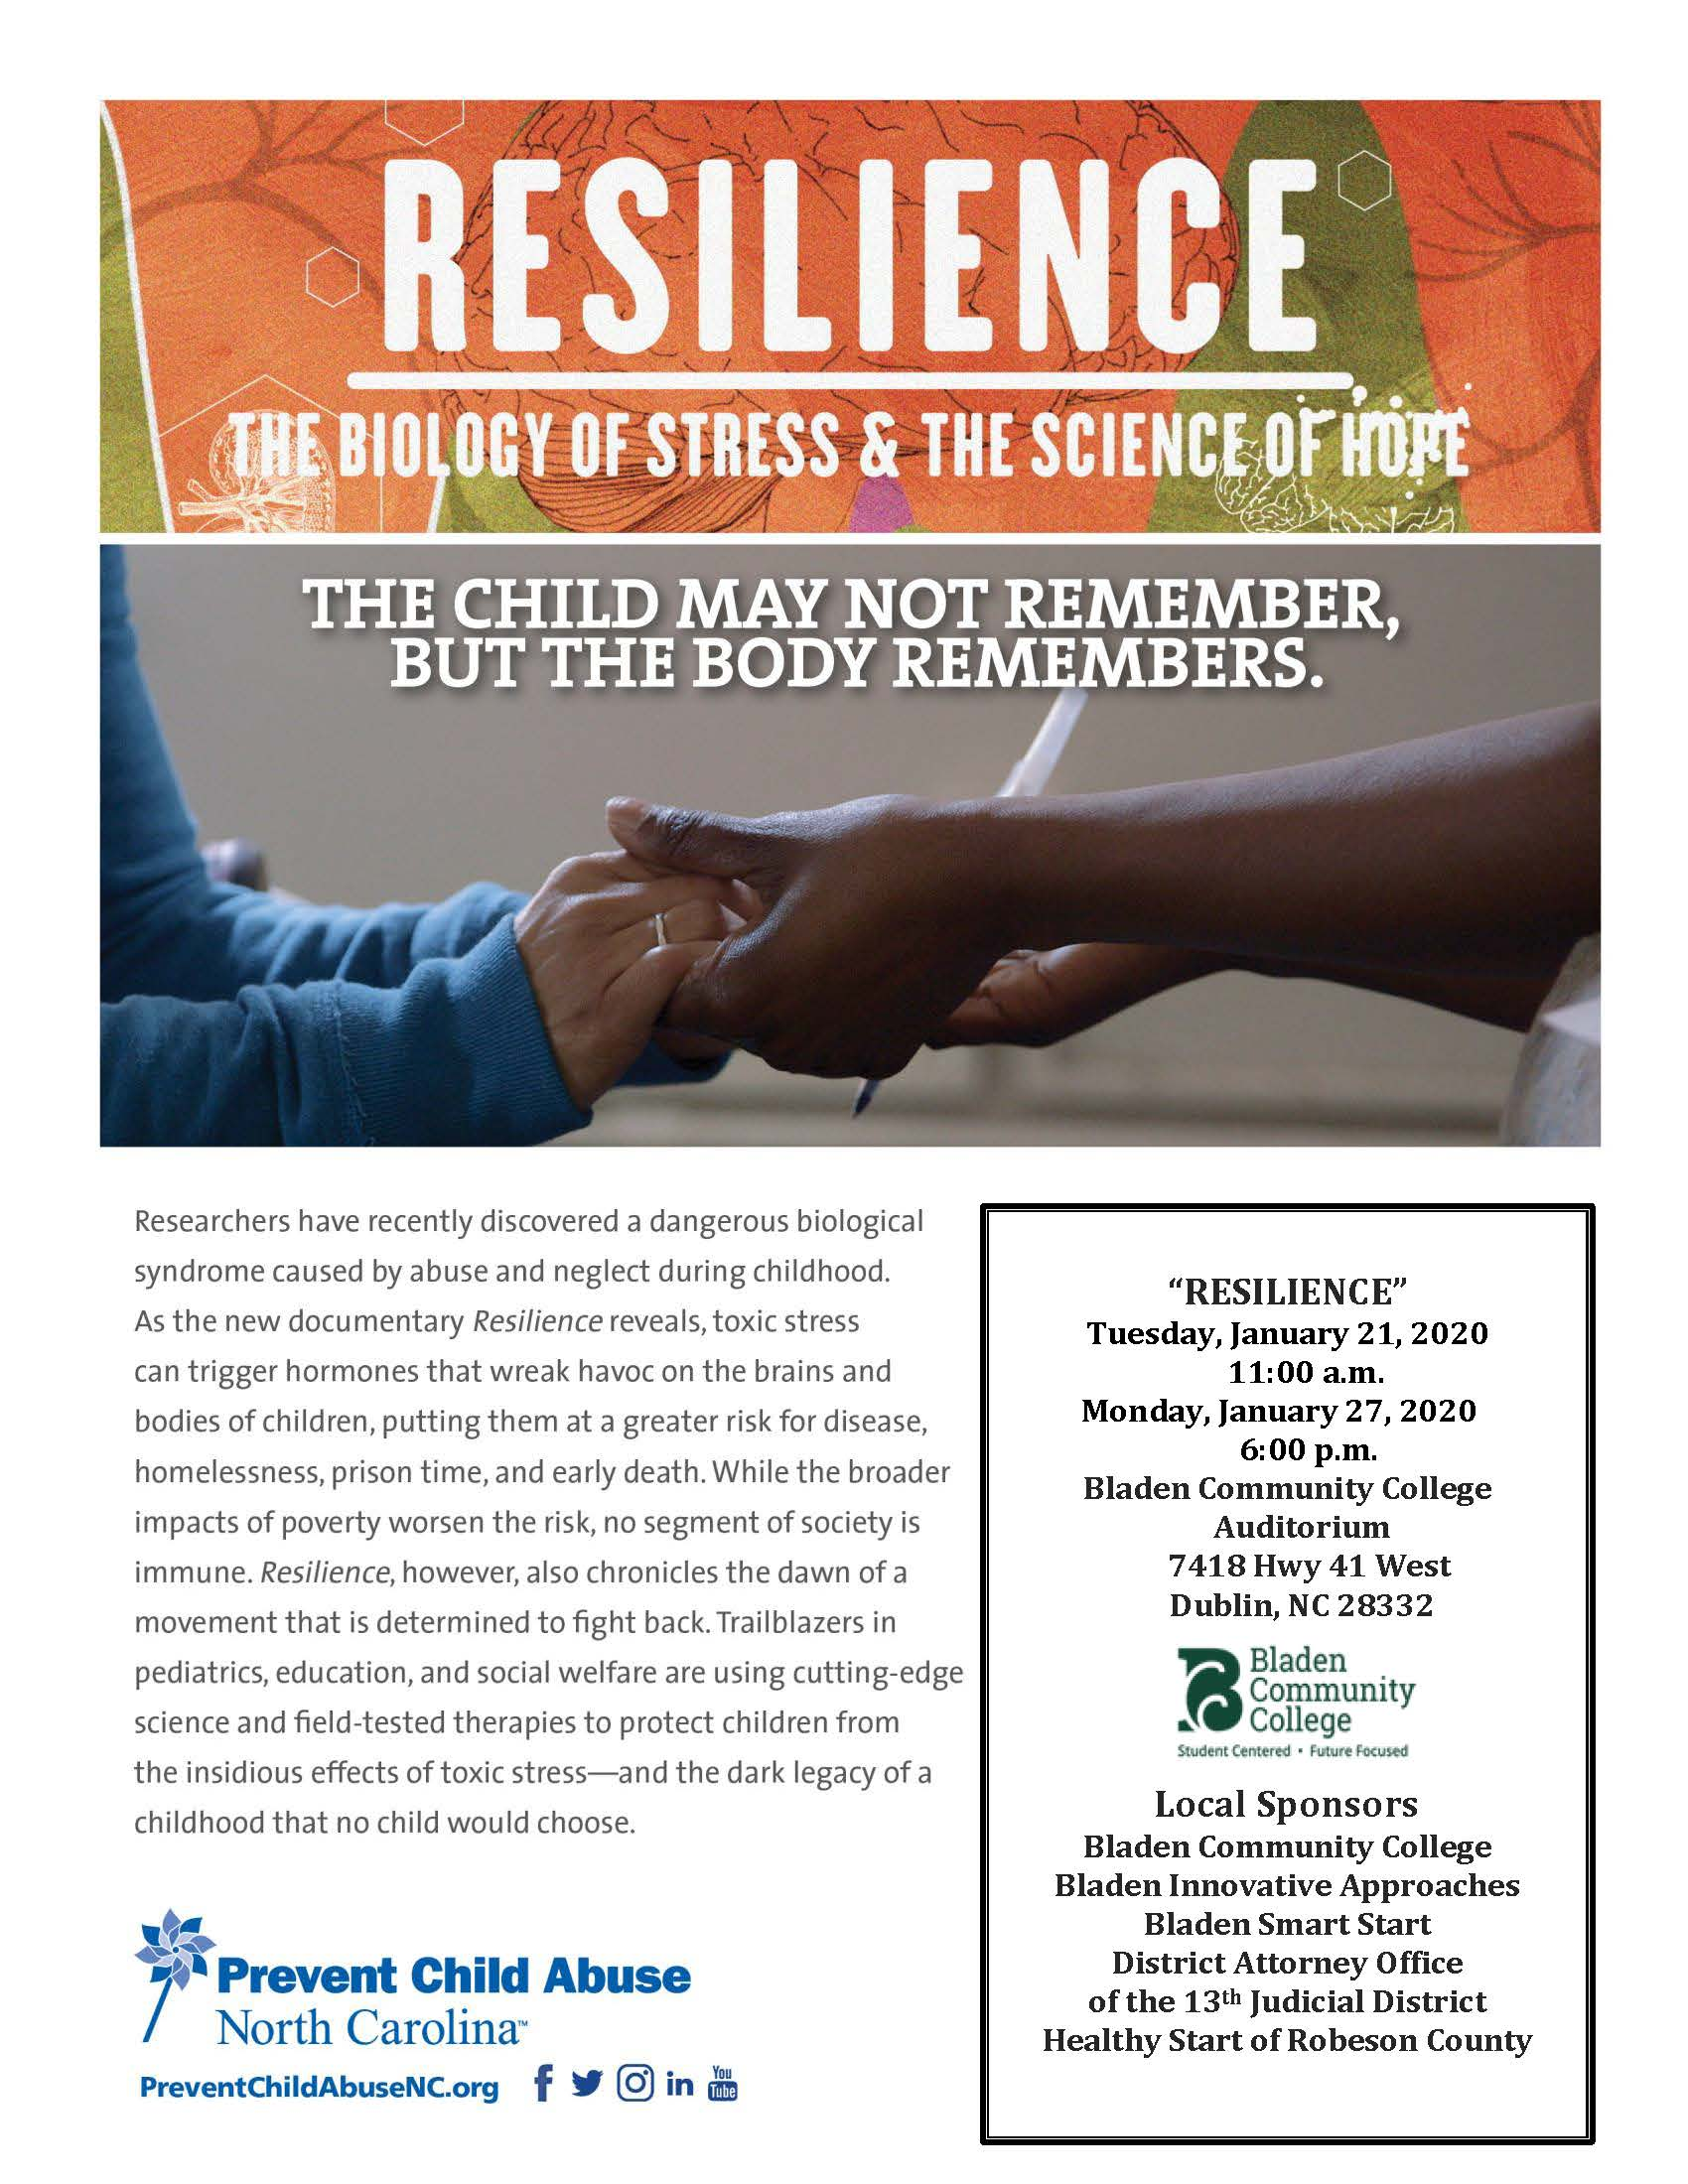 BCC Resilience Film event flyer FINAL_Page_1